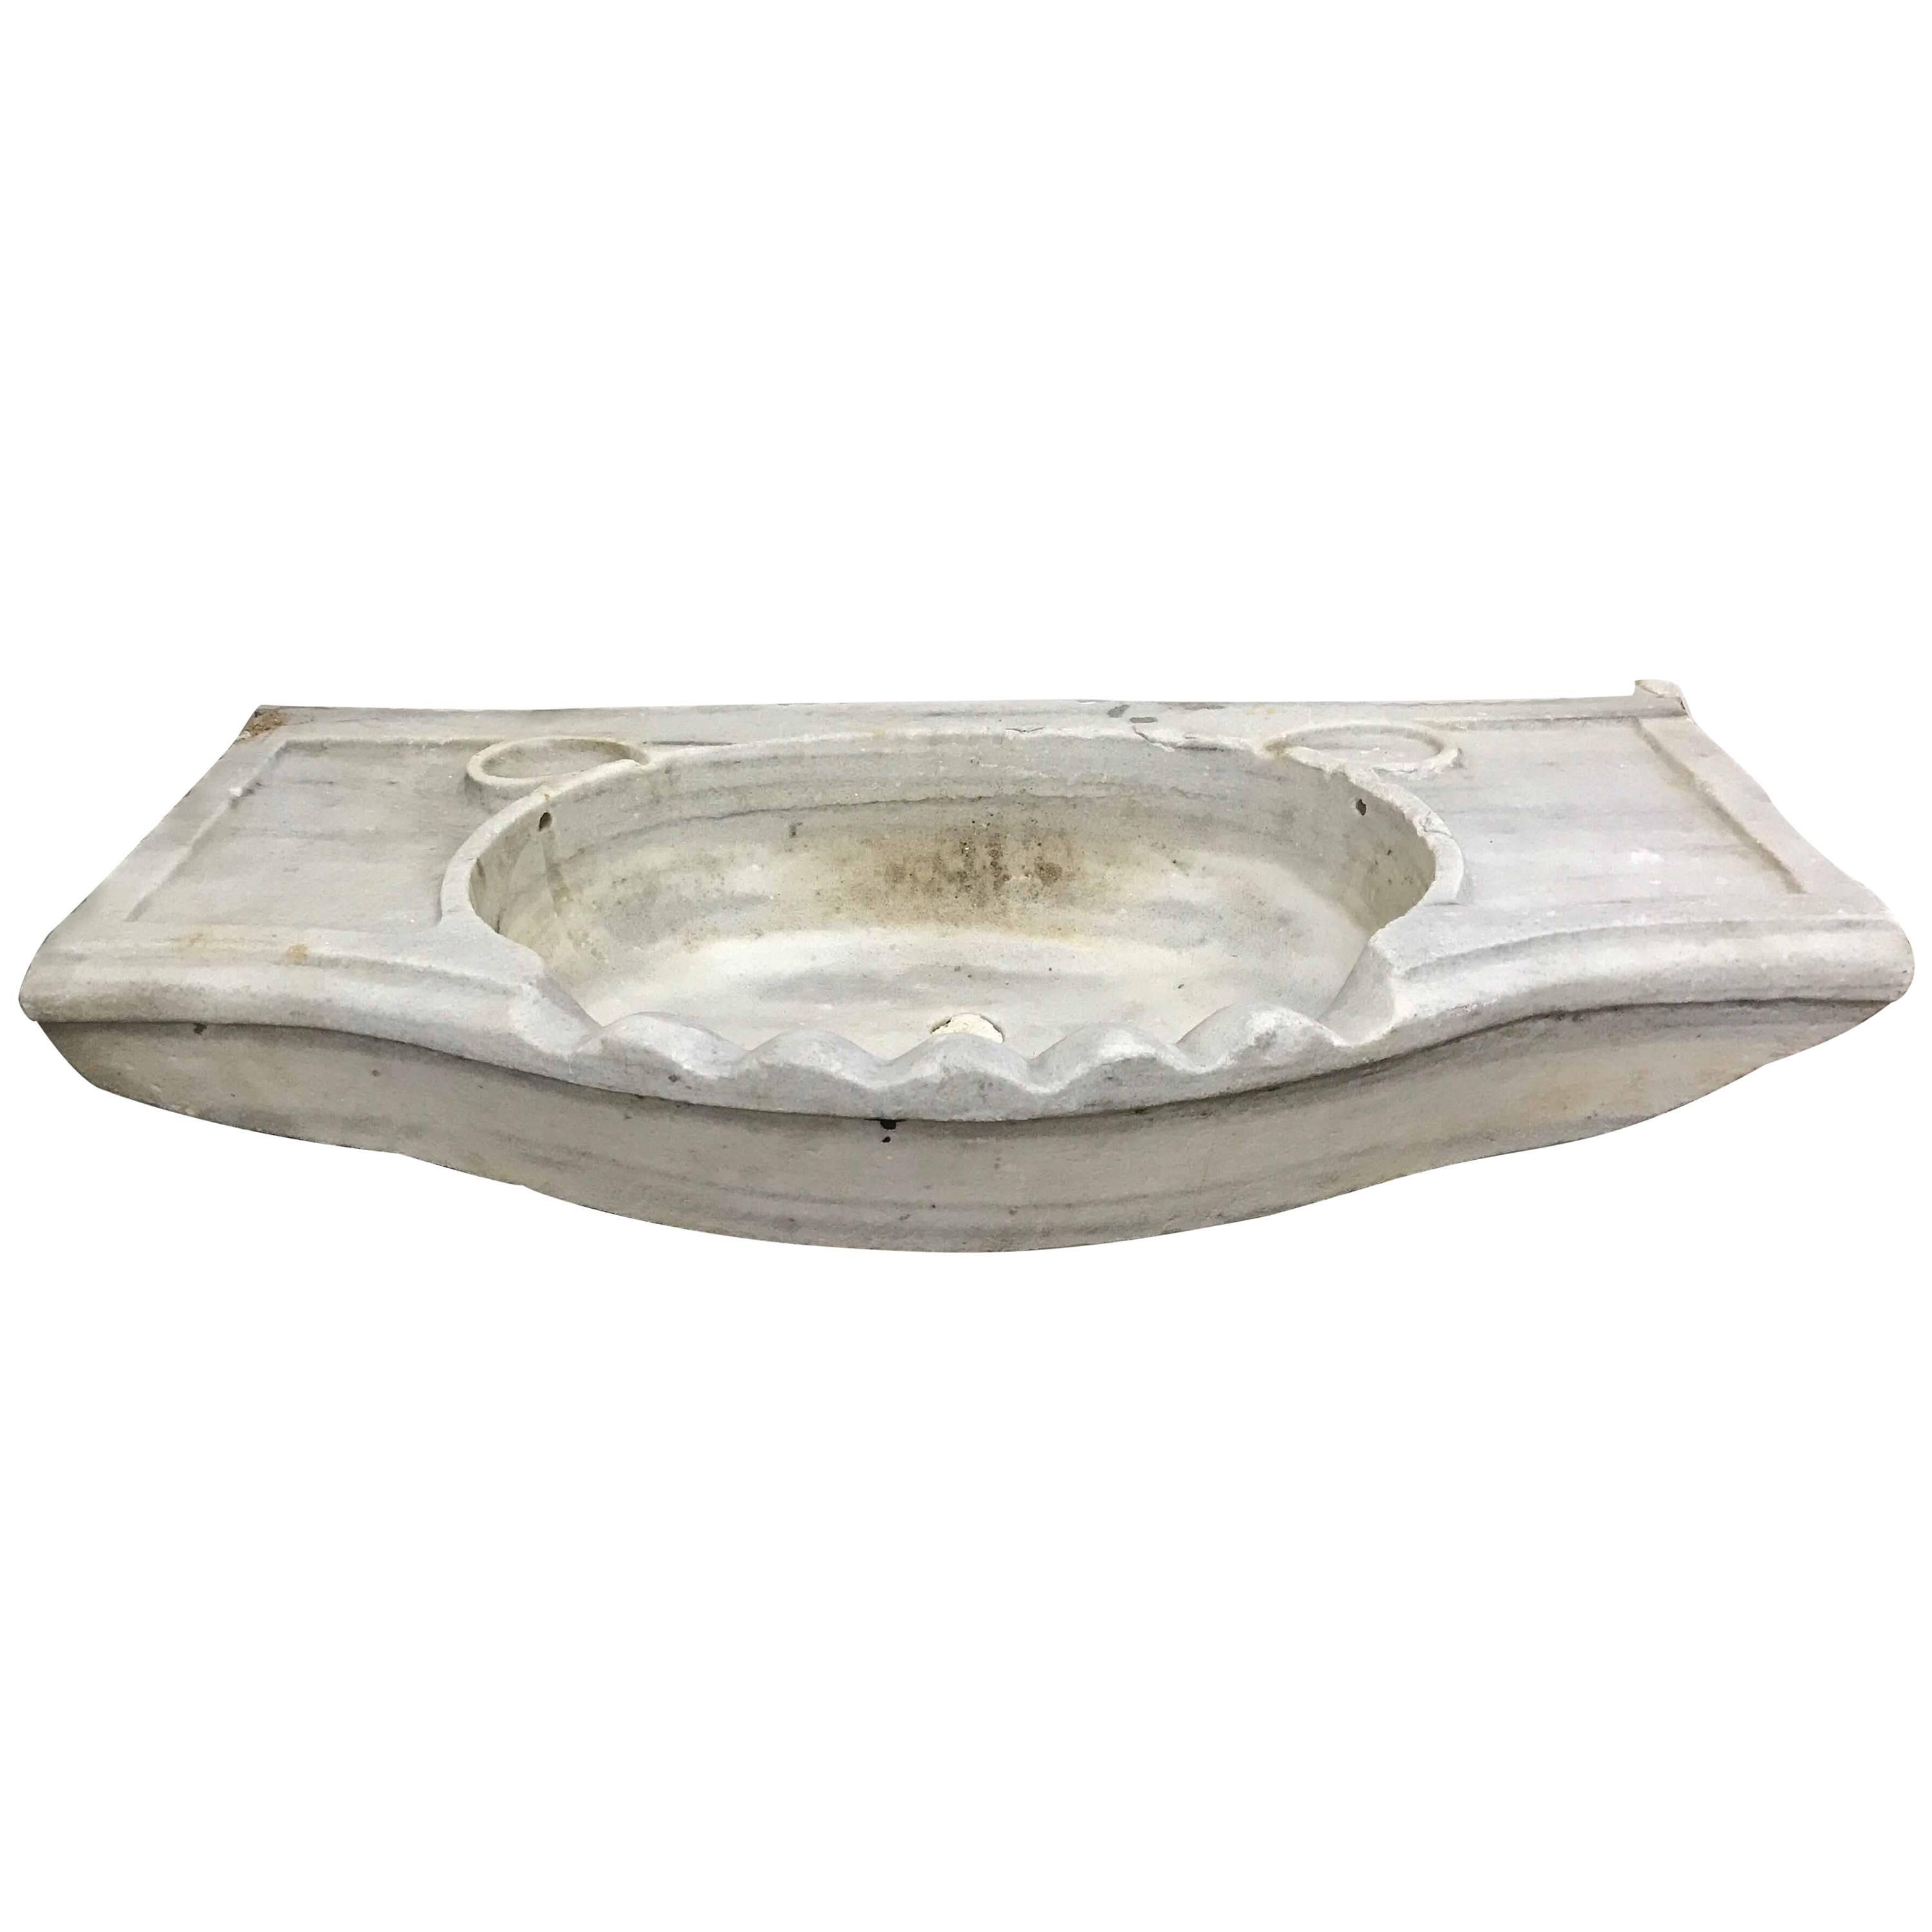 White Antique Marble Sink, Circa 1800s